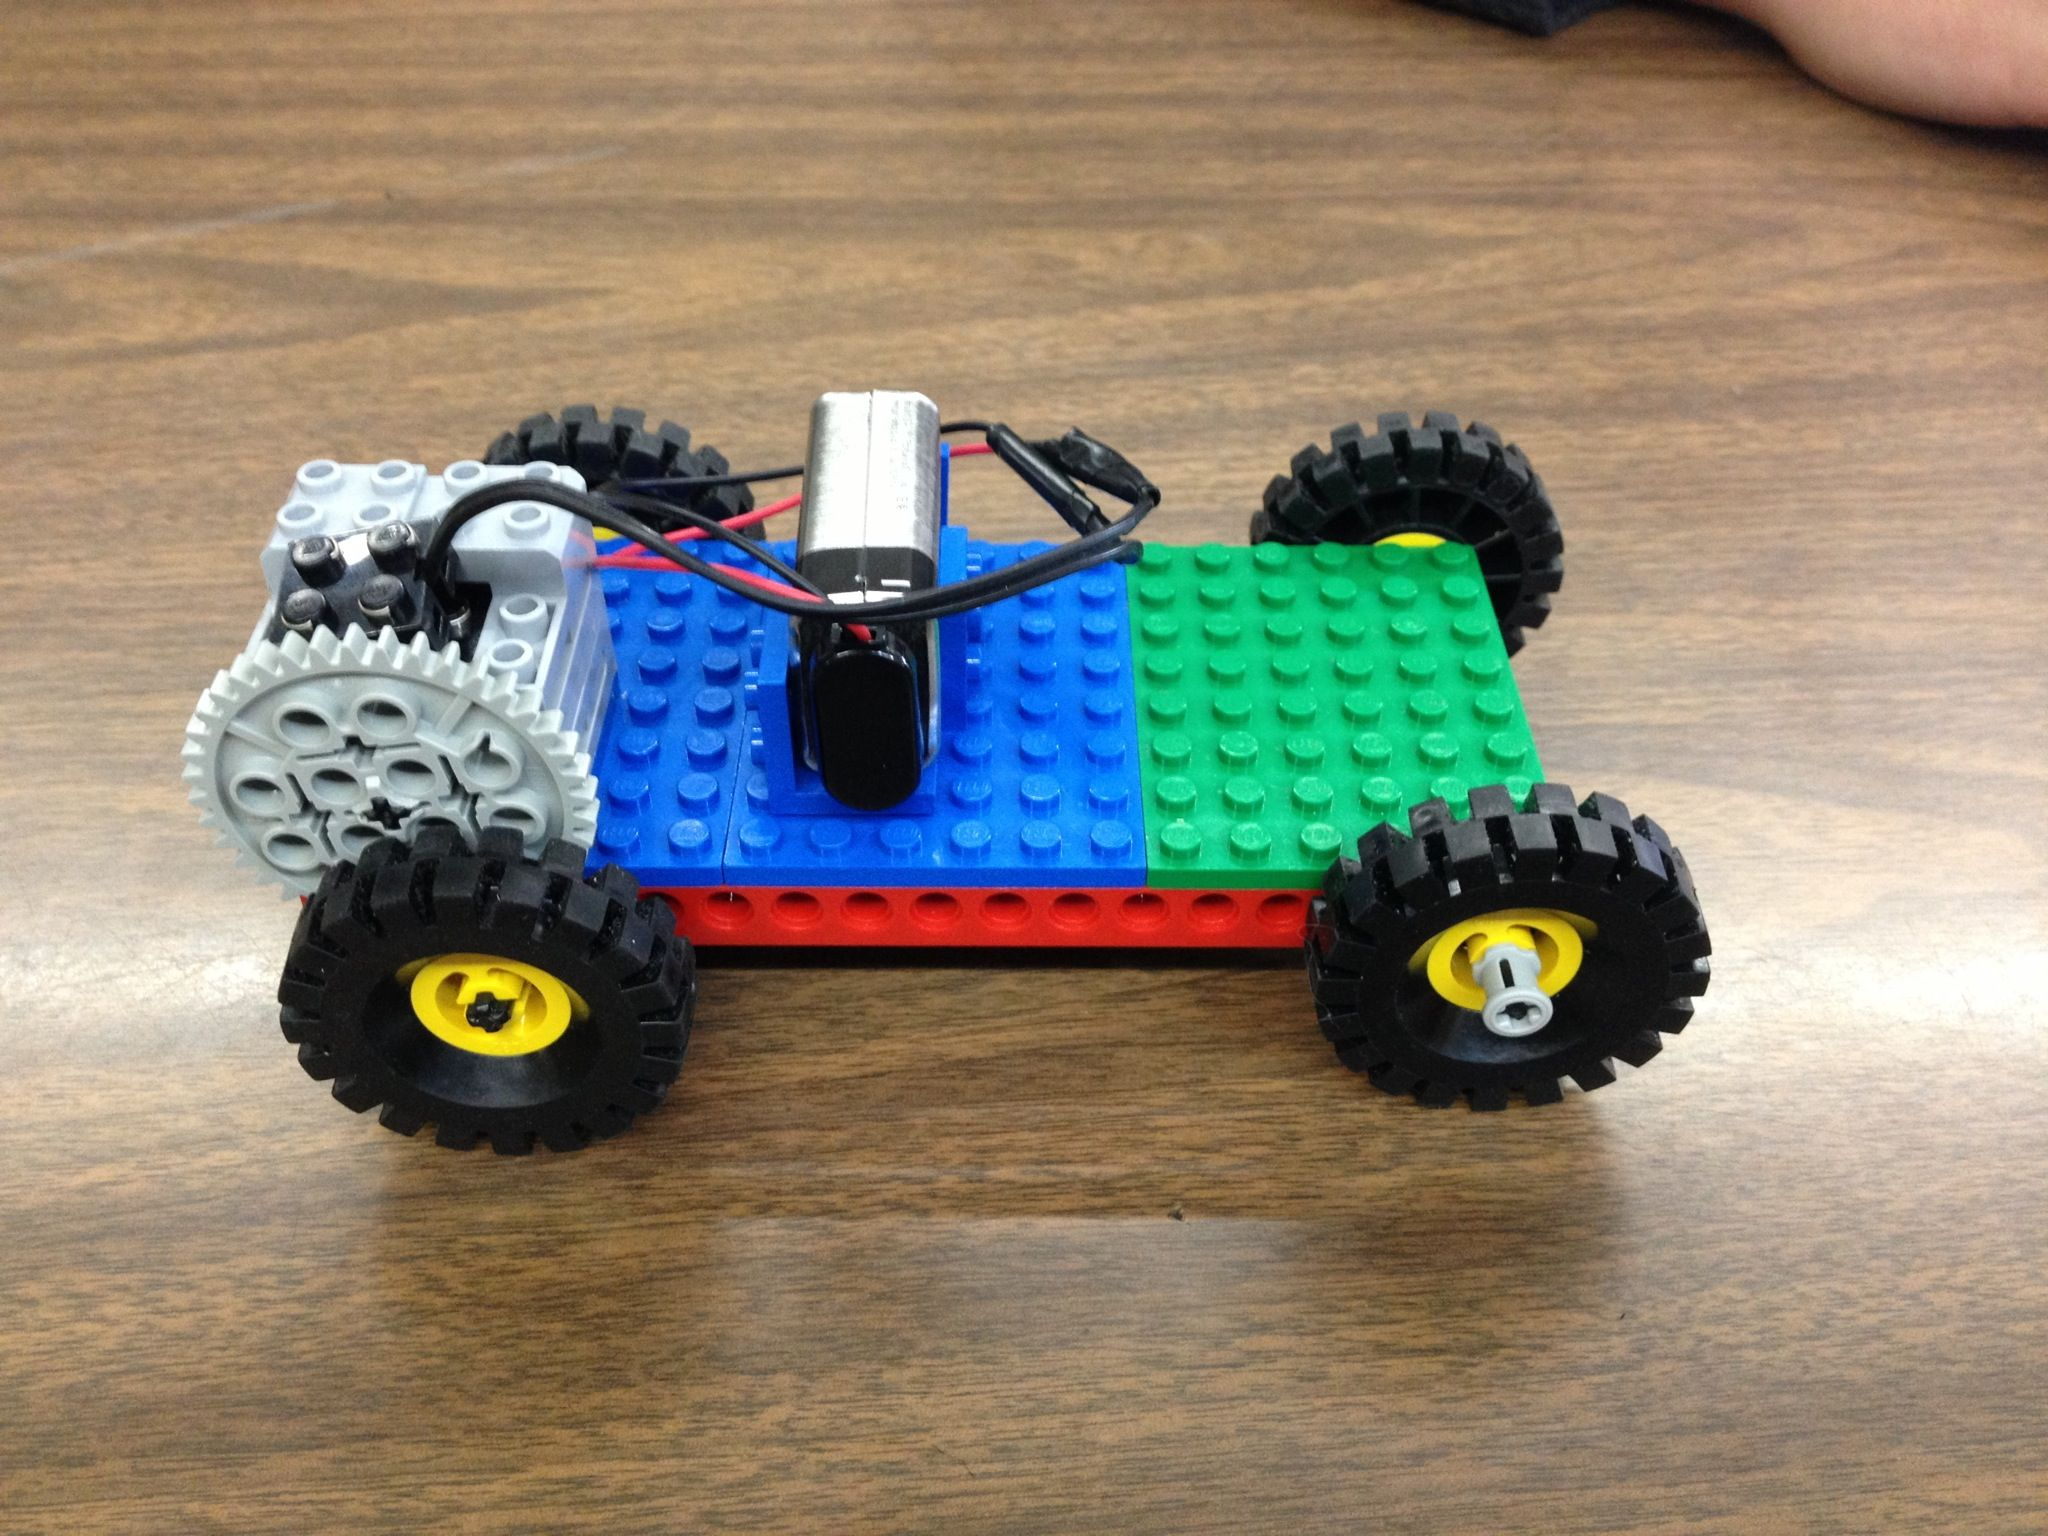 How To A Lego Car With 9v Battery Motor Recipe Automotive Eliminator Electronic Circuits Kits Doityourself